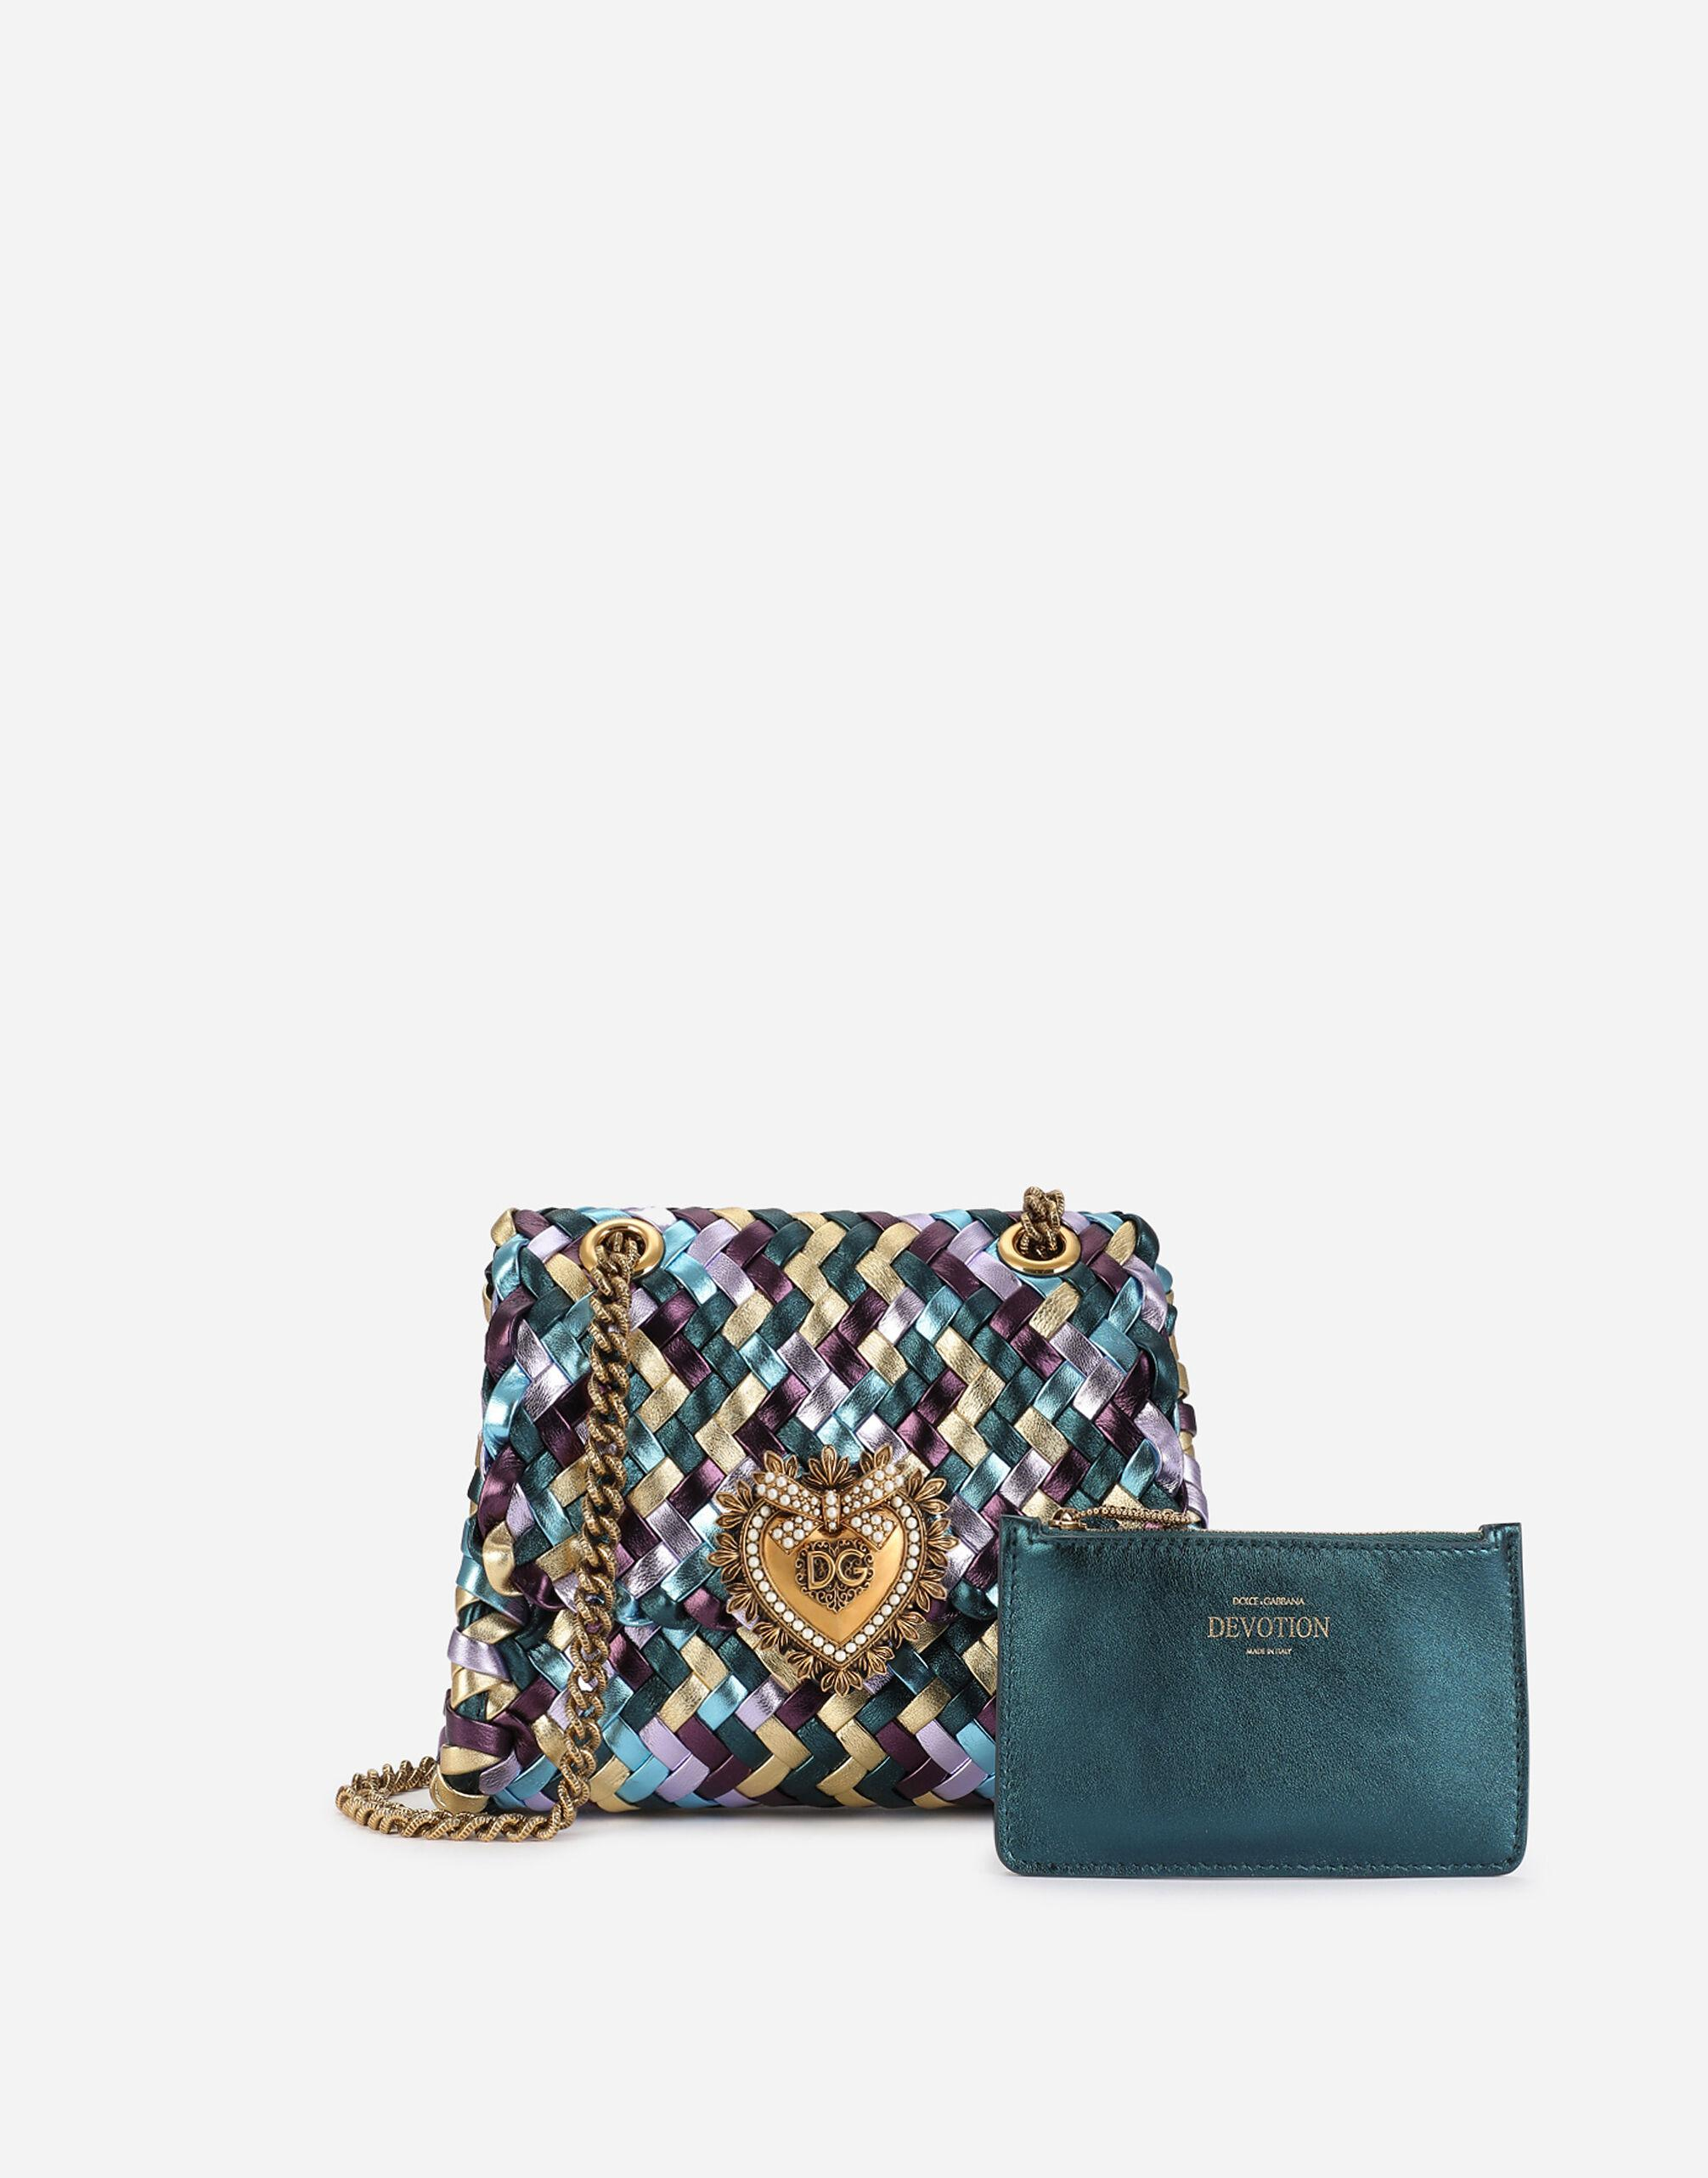 Small Devotion shoulder bag in woven laminated nappa leather 3